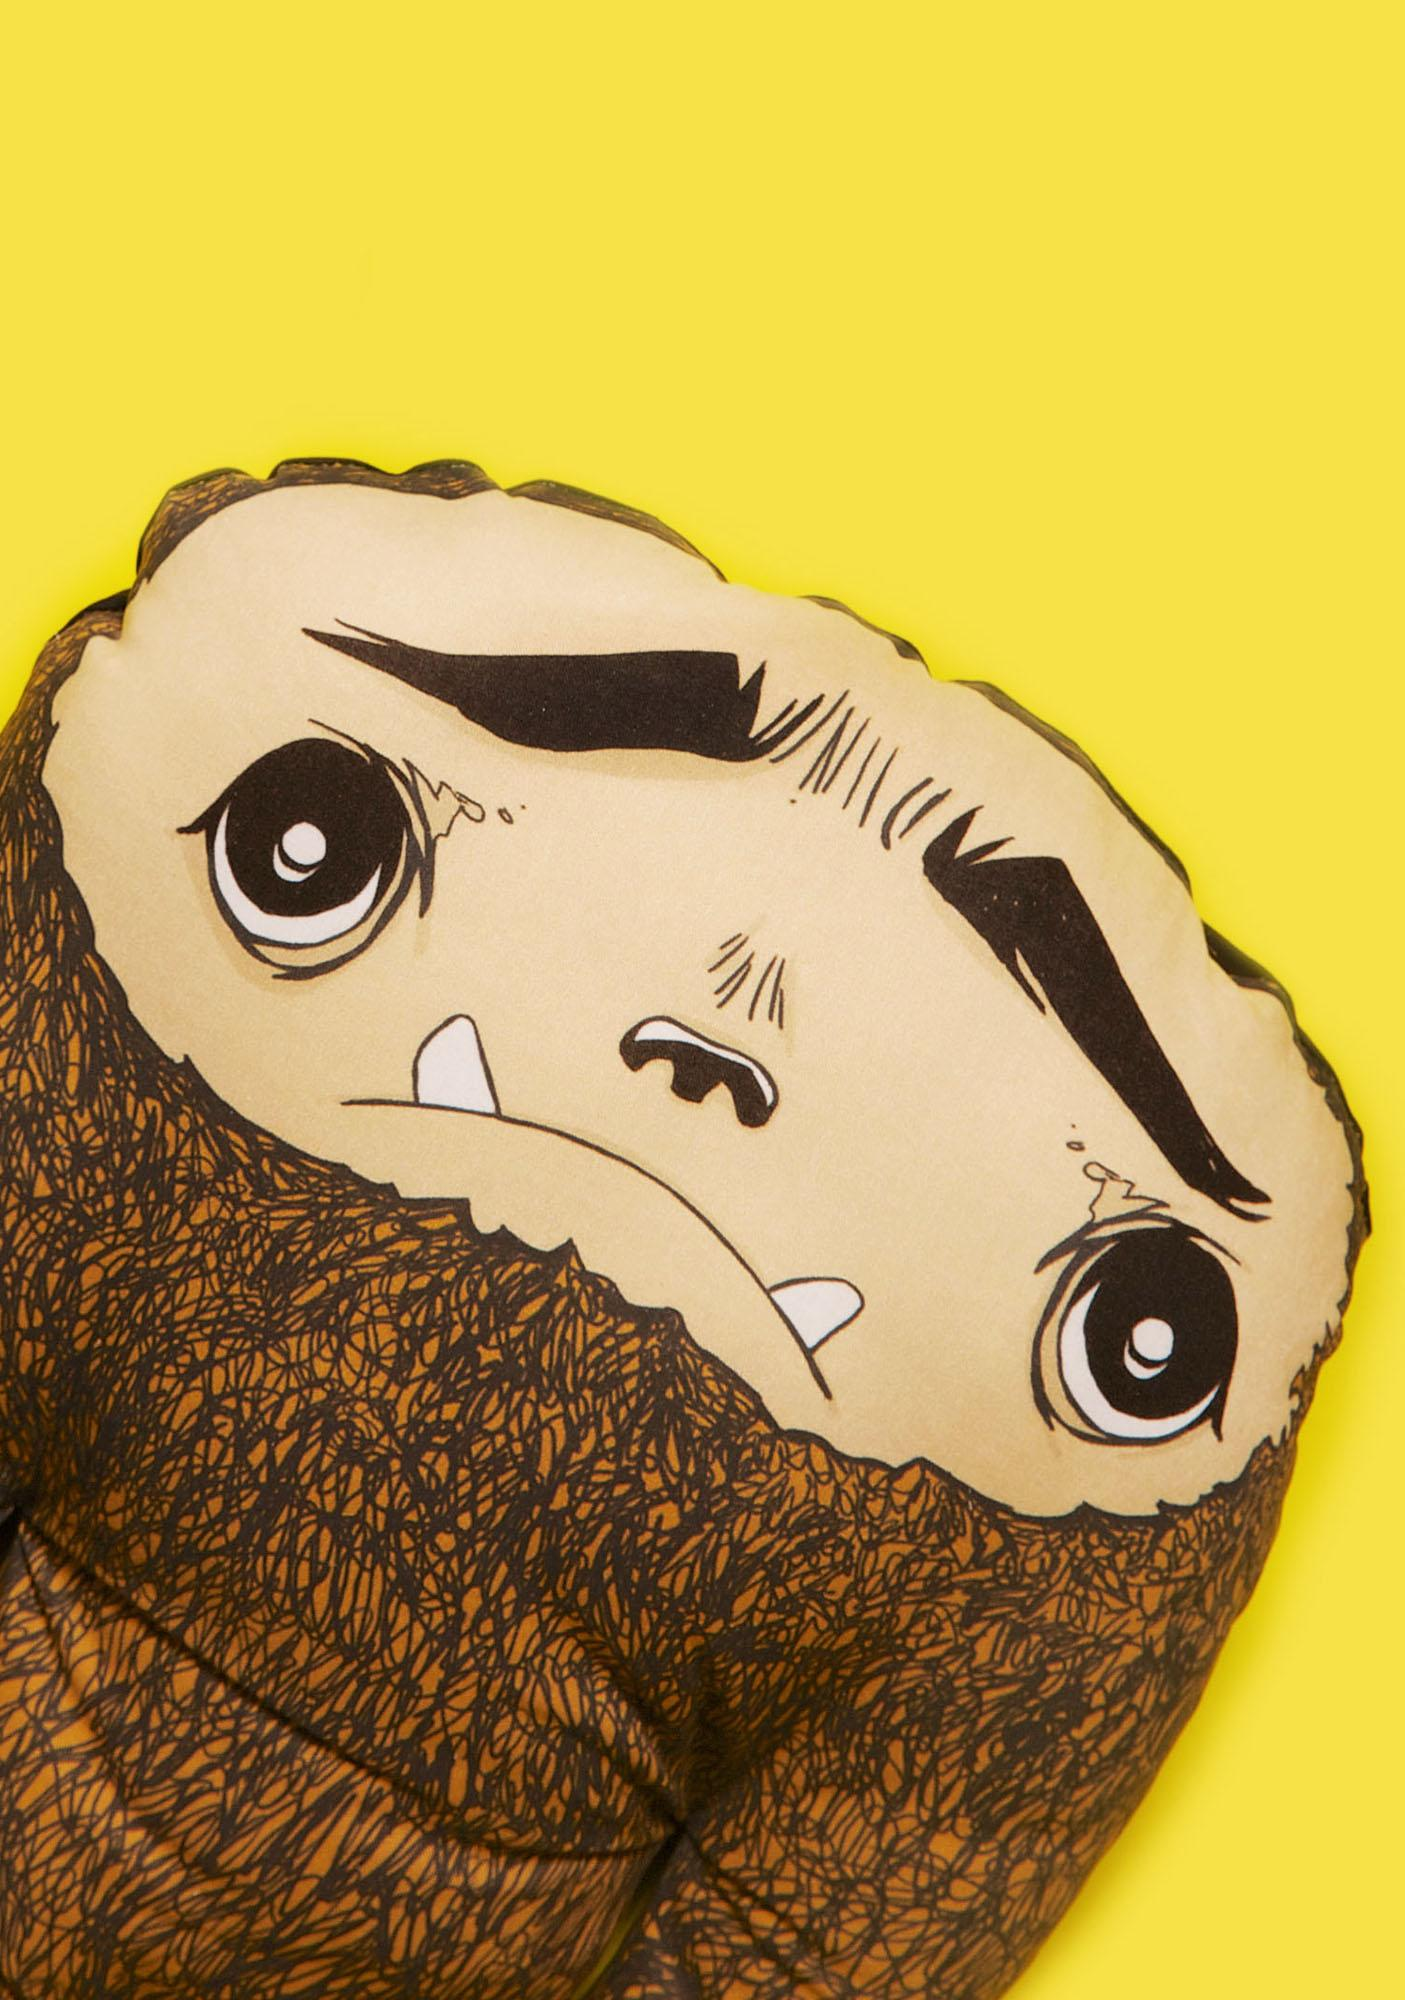 Pickled Punks Sadsquatch Plush